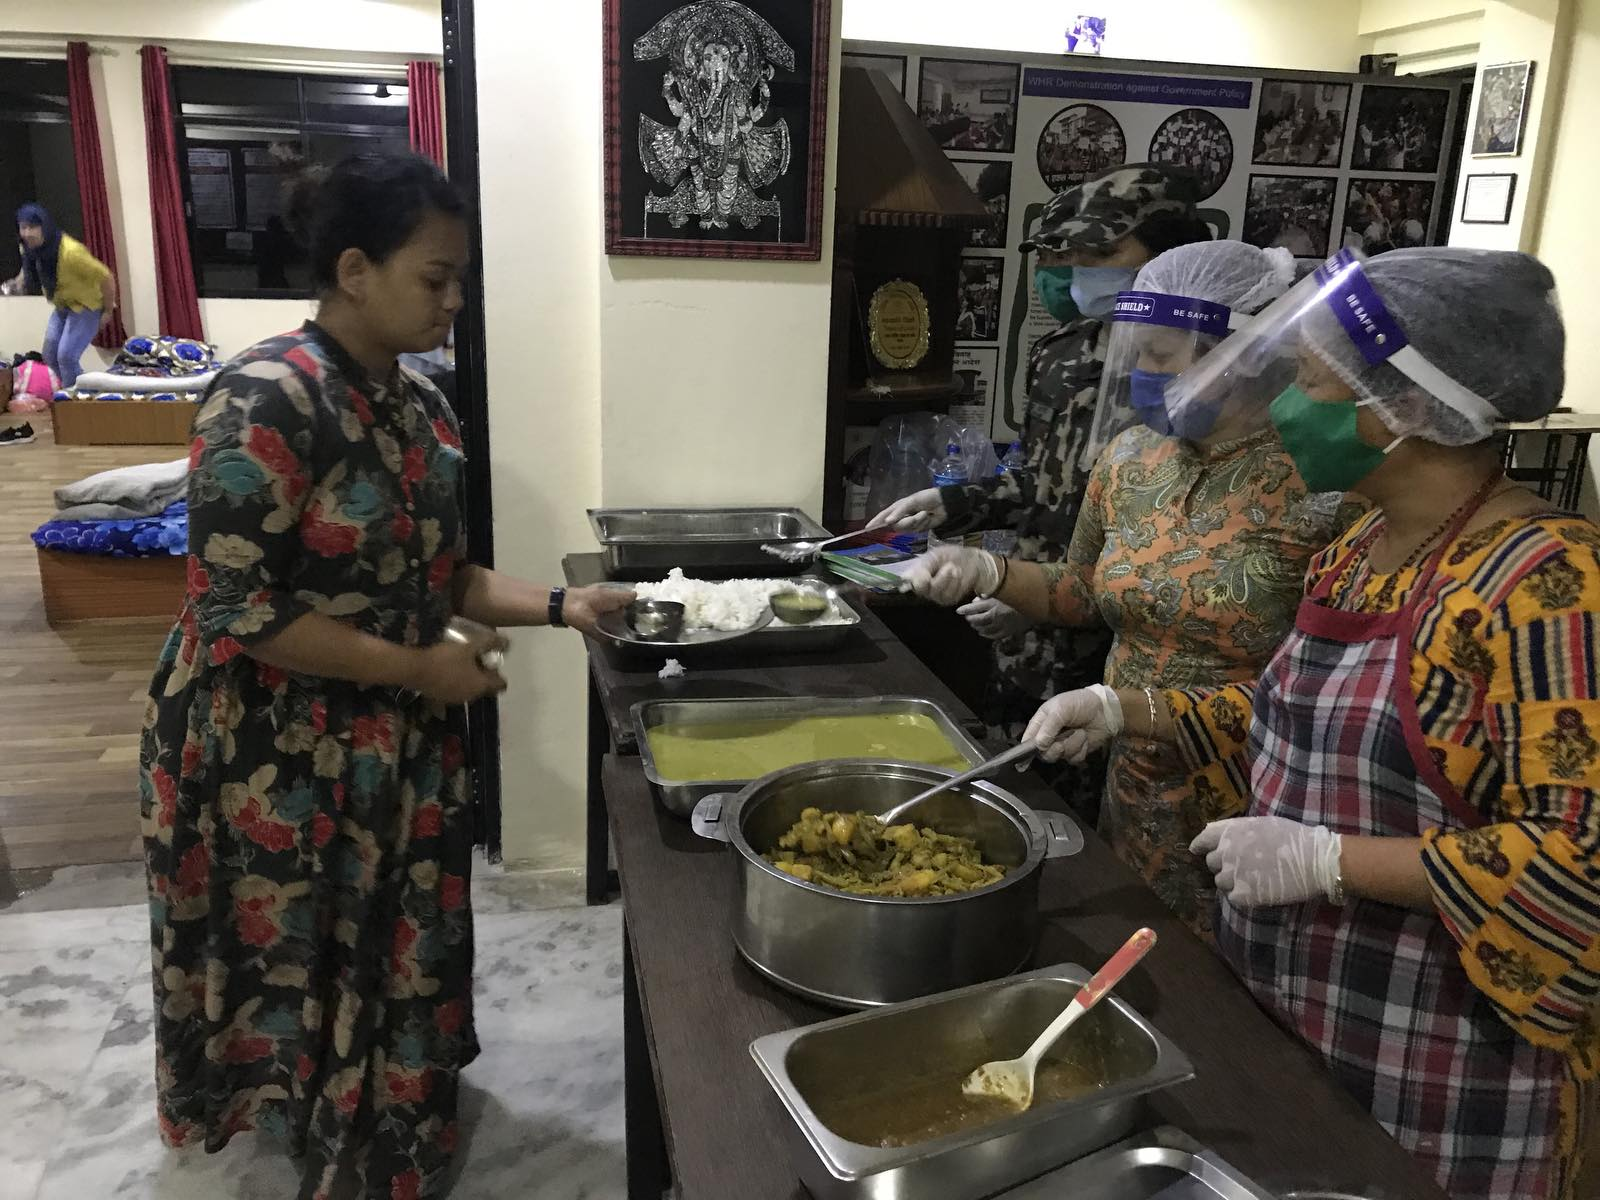 Community-kitchen-staffs-using-necessary-safety-gears-while-serving-food